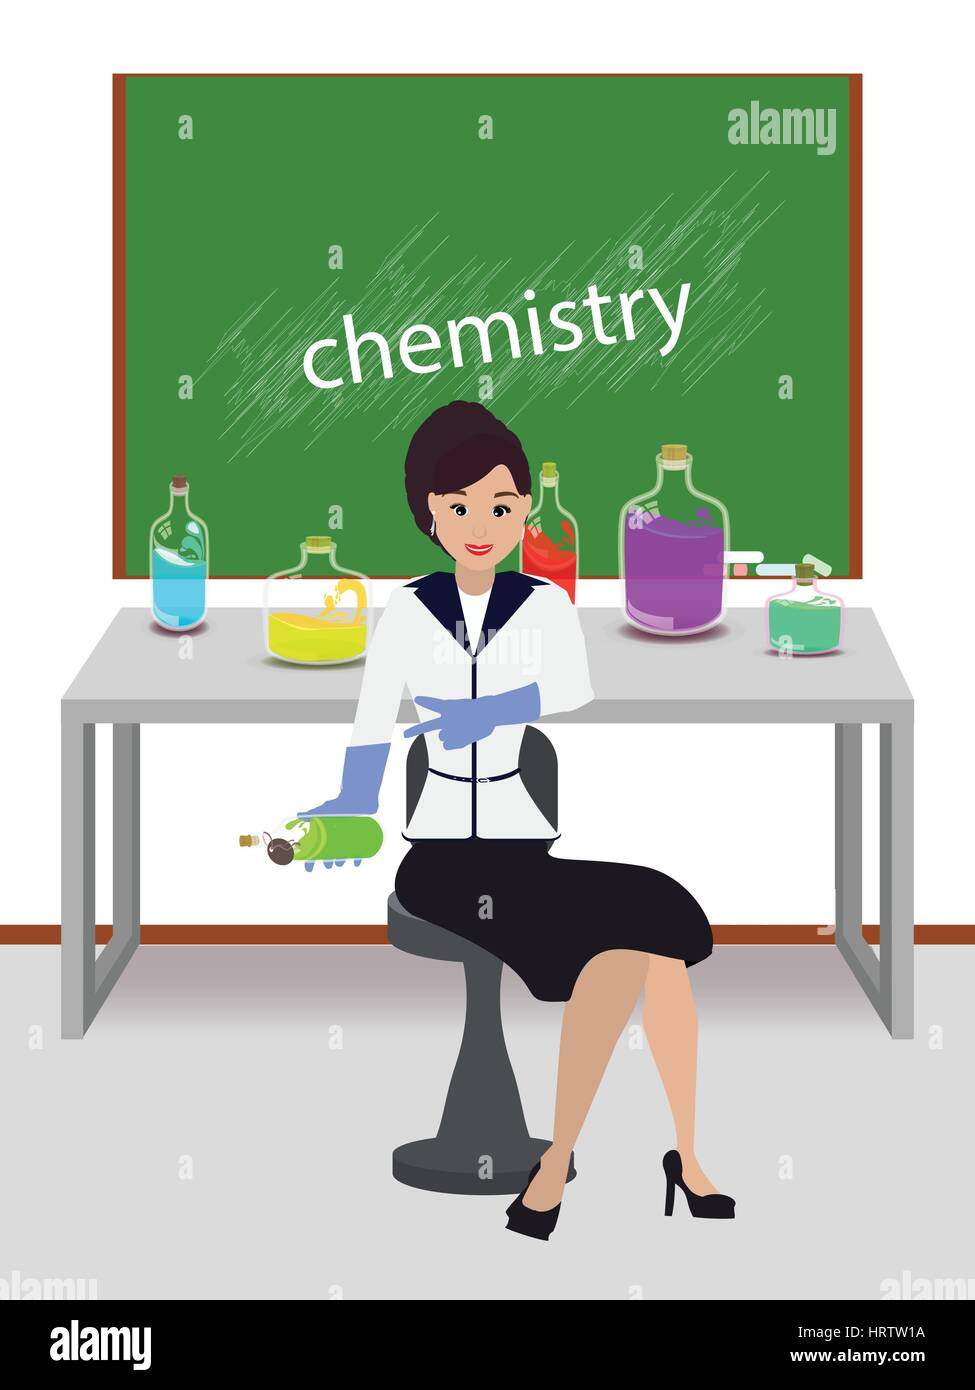 teacher of chemistry. concept of education. illustration. use a smart phone, website, printing, decorating etc - Stock Vector